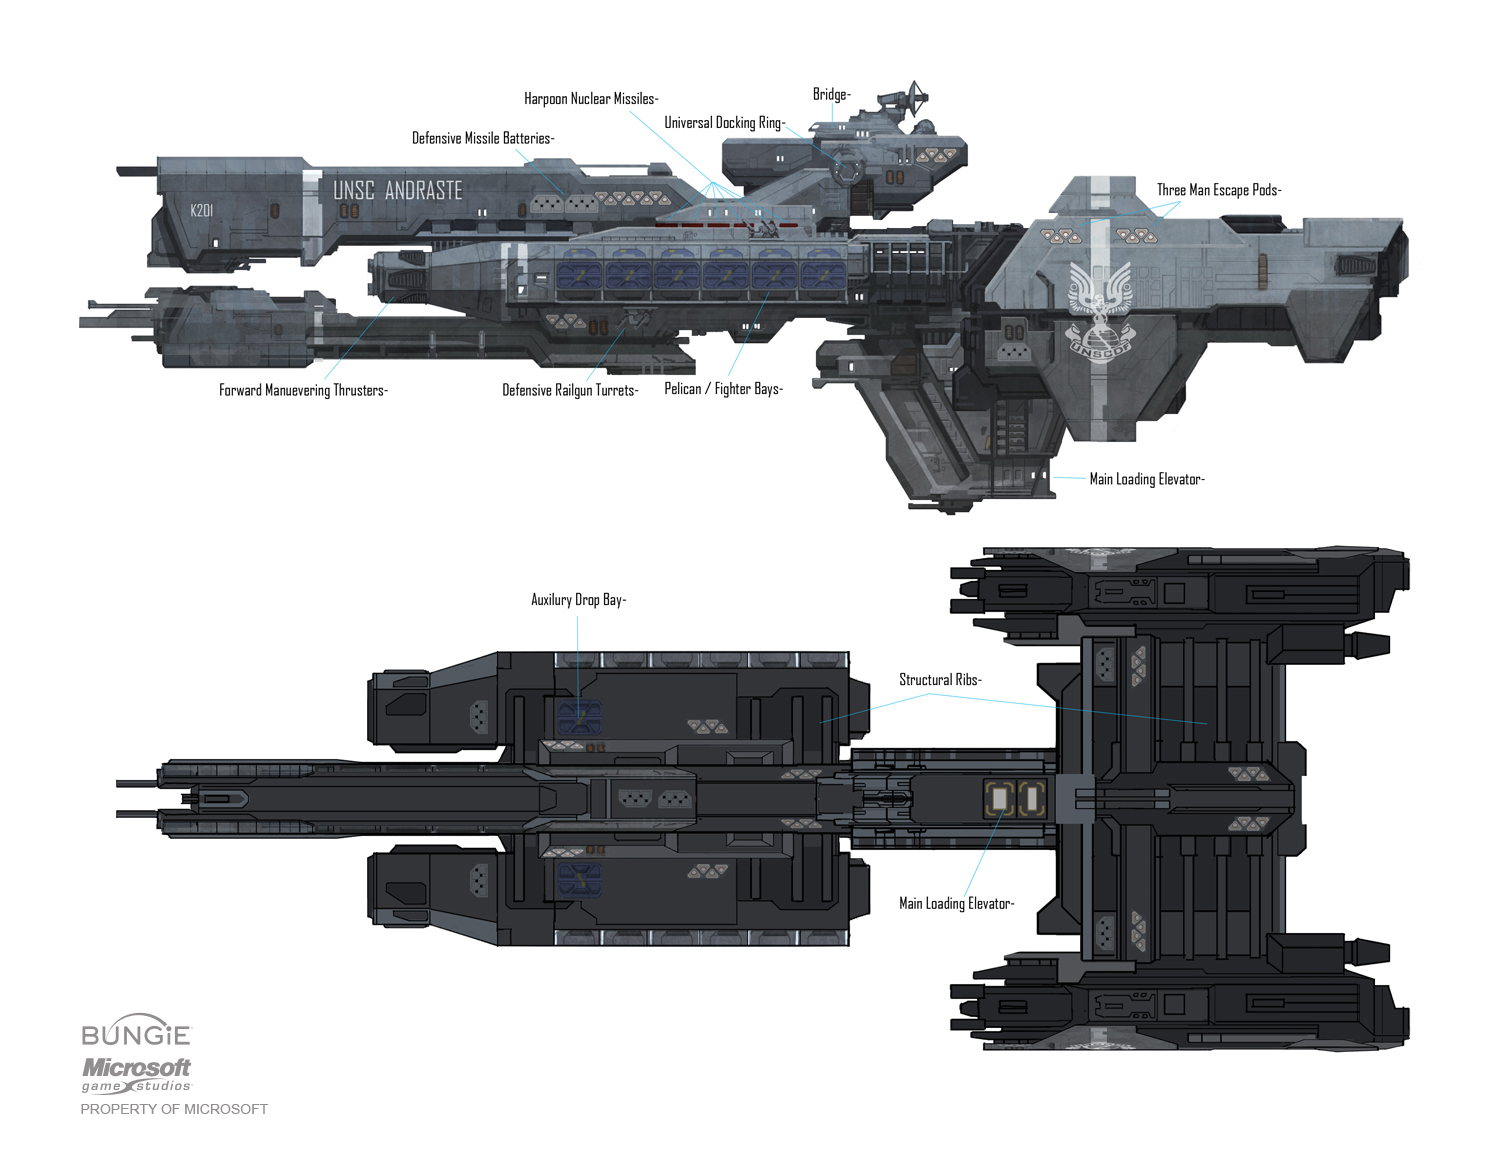 drone cannon fallout 3 with Halo 3 Manualpromotional Sketches And on Fiche additionally File Hero asset 4 in addition 68976 Schwarzenegger Says He Will Be Back For Terminator 5 additionally Helldiver  mand Walker 174249374 in addition 2011 06 01 archive.